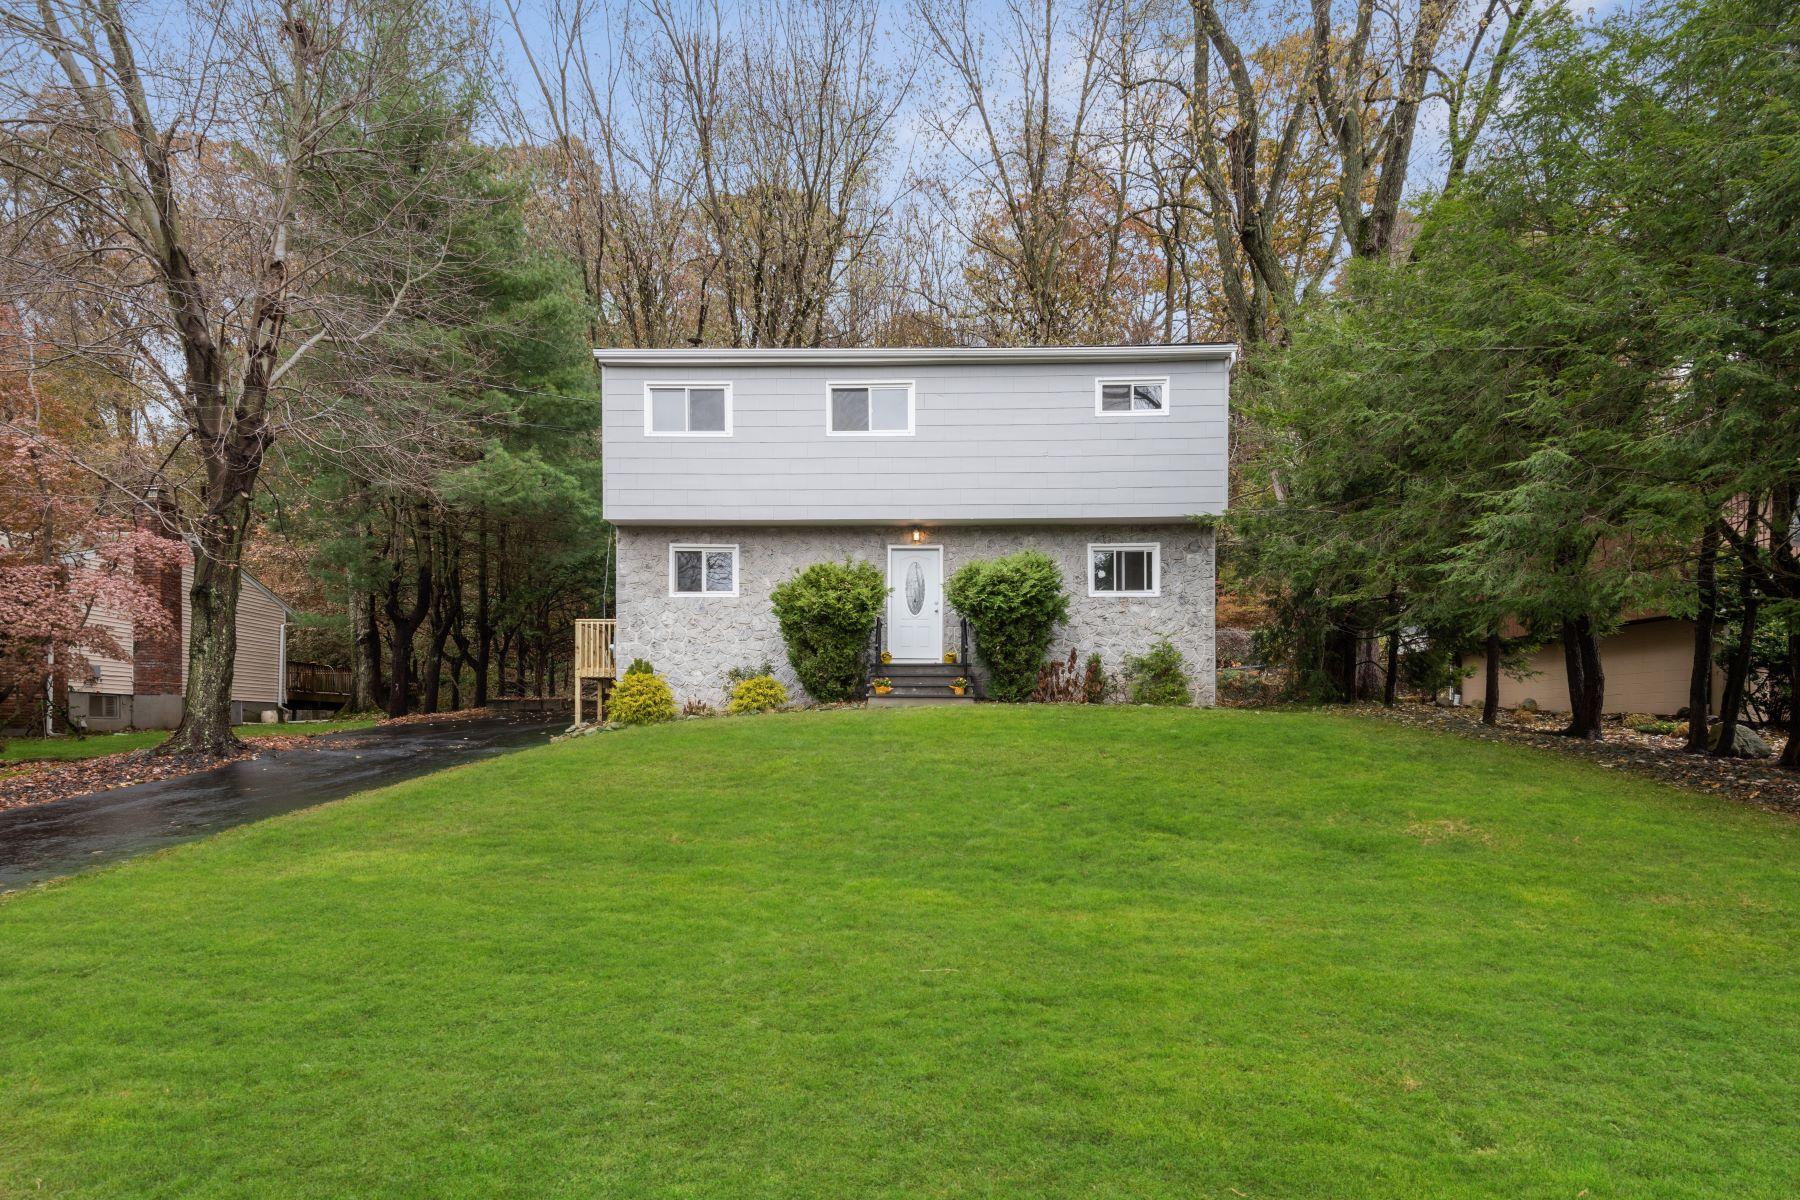 Single Family Homes for Sale at Newly Renovated Center Hall Colonial 68 Greenwood Lane White Plains, New York 10607 United States